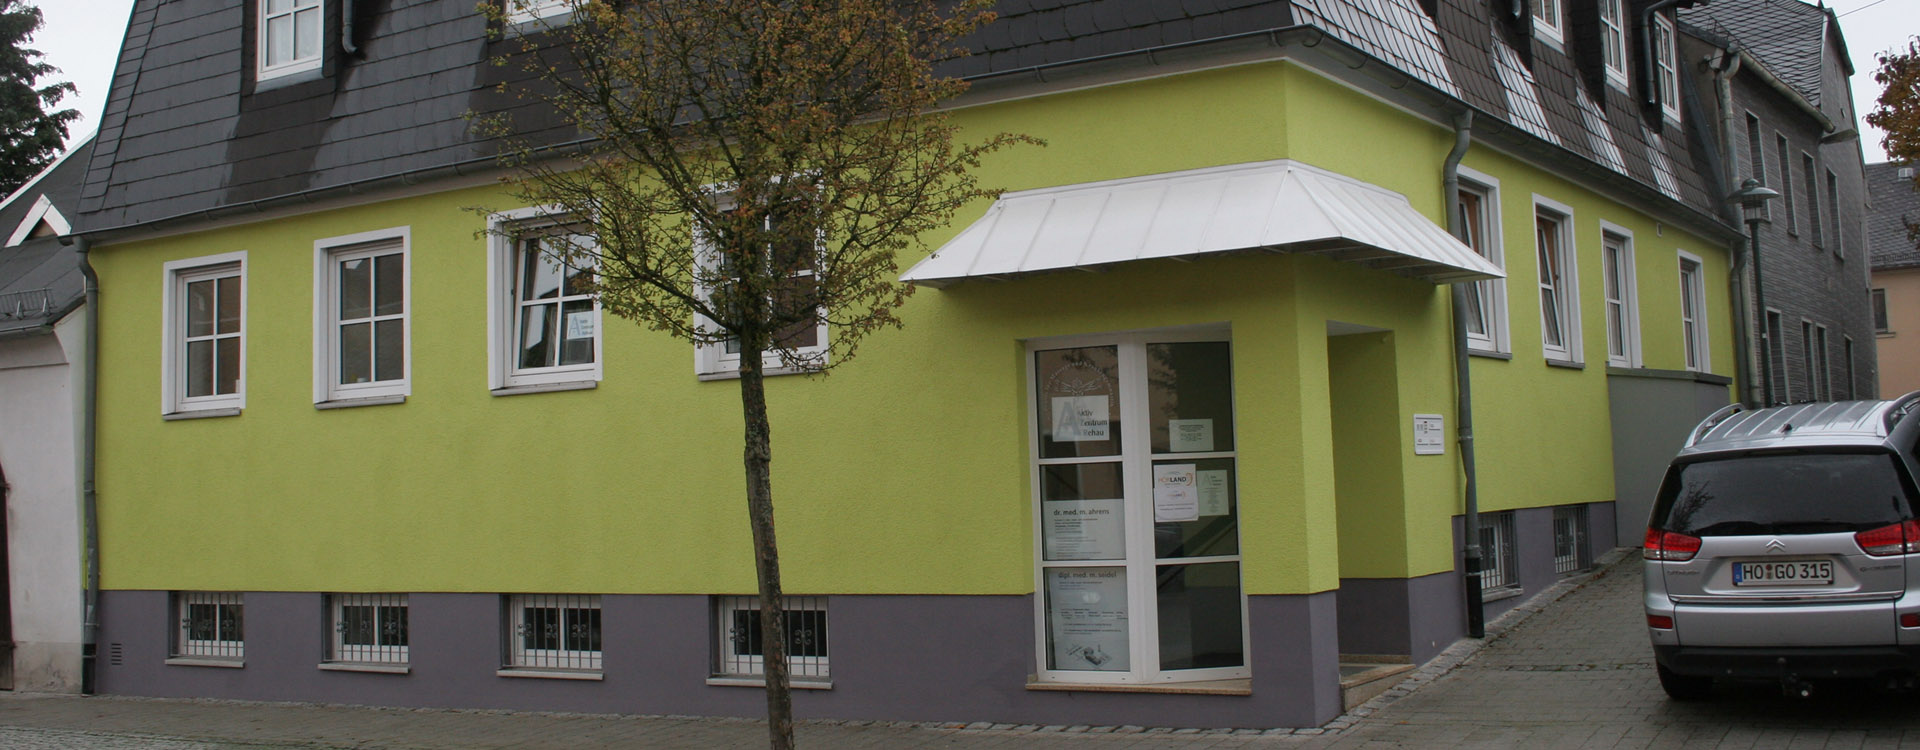 AZR Physiotherapie GmbH